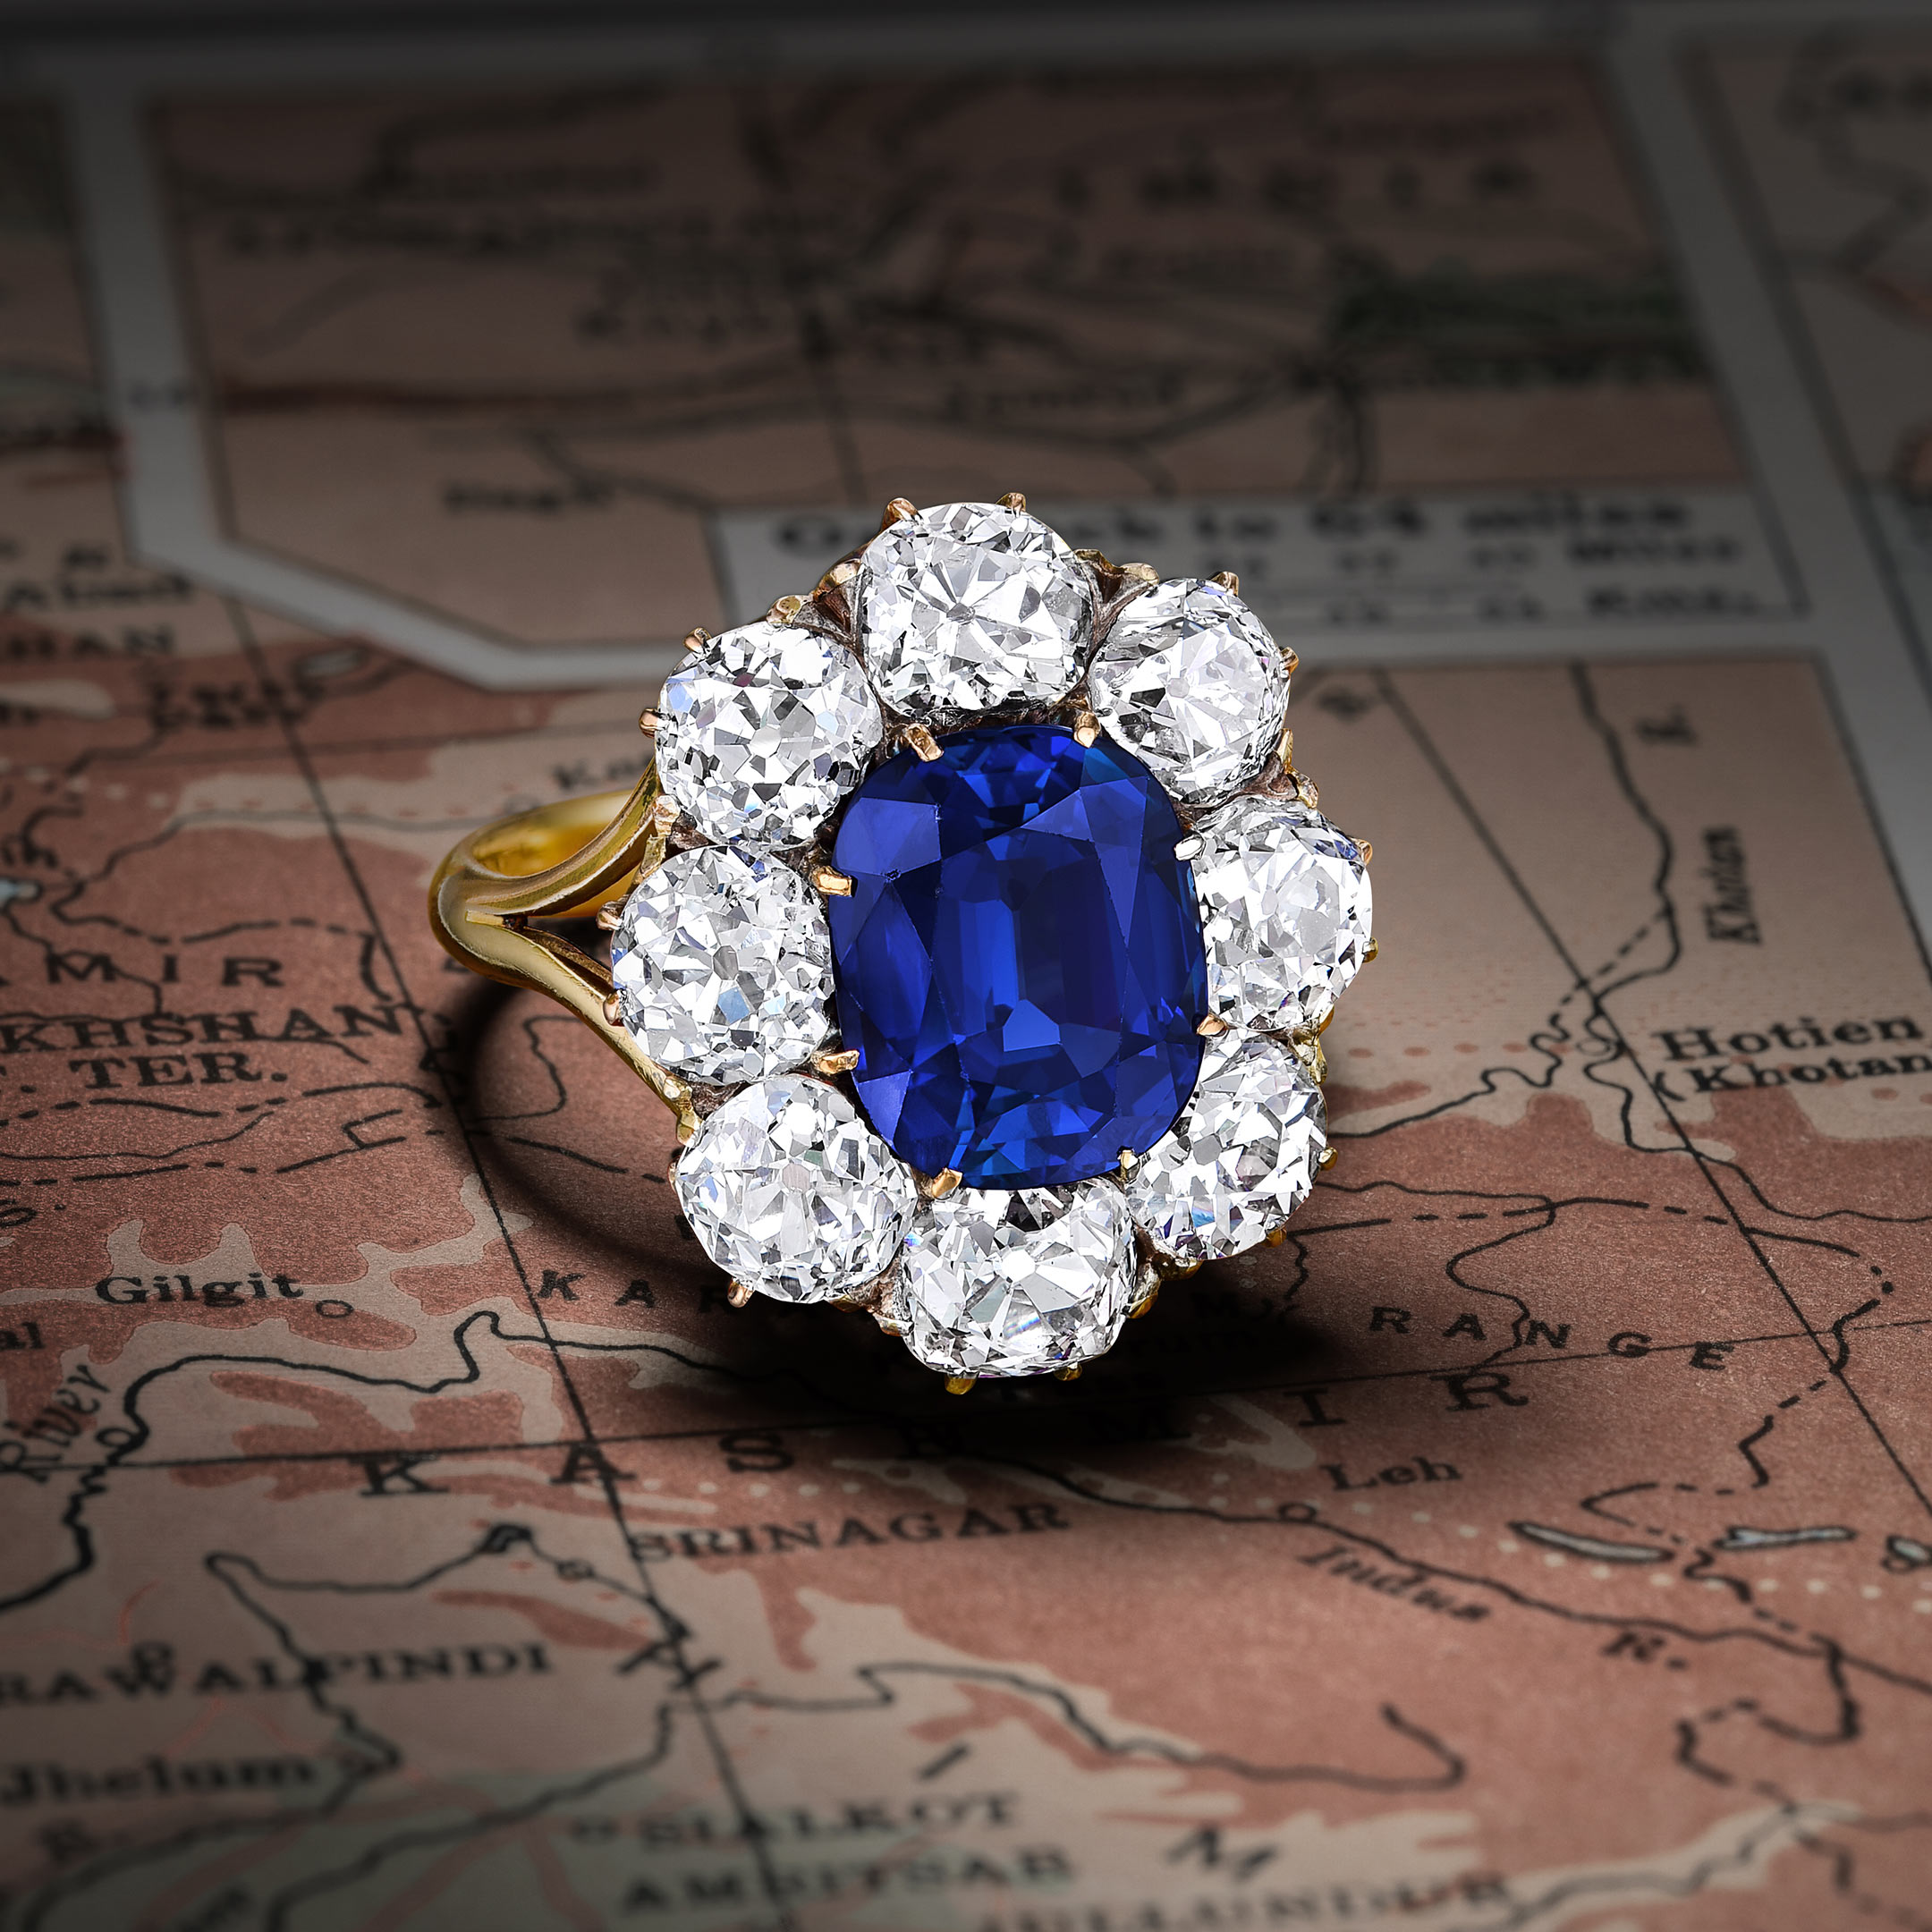 Victorian Kashmir Sapphire and Diamond Ring - Fortuna NYC Fine Jewelry & Watch Auction